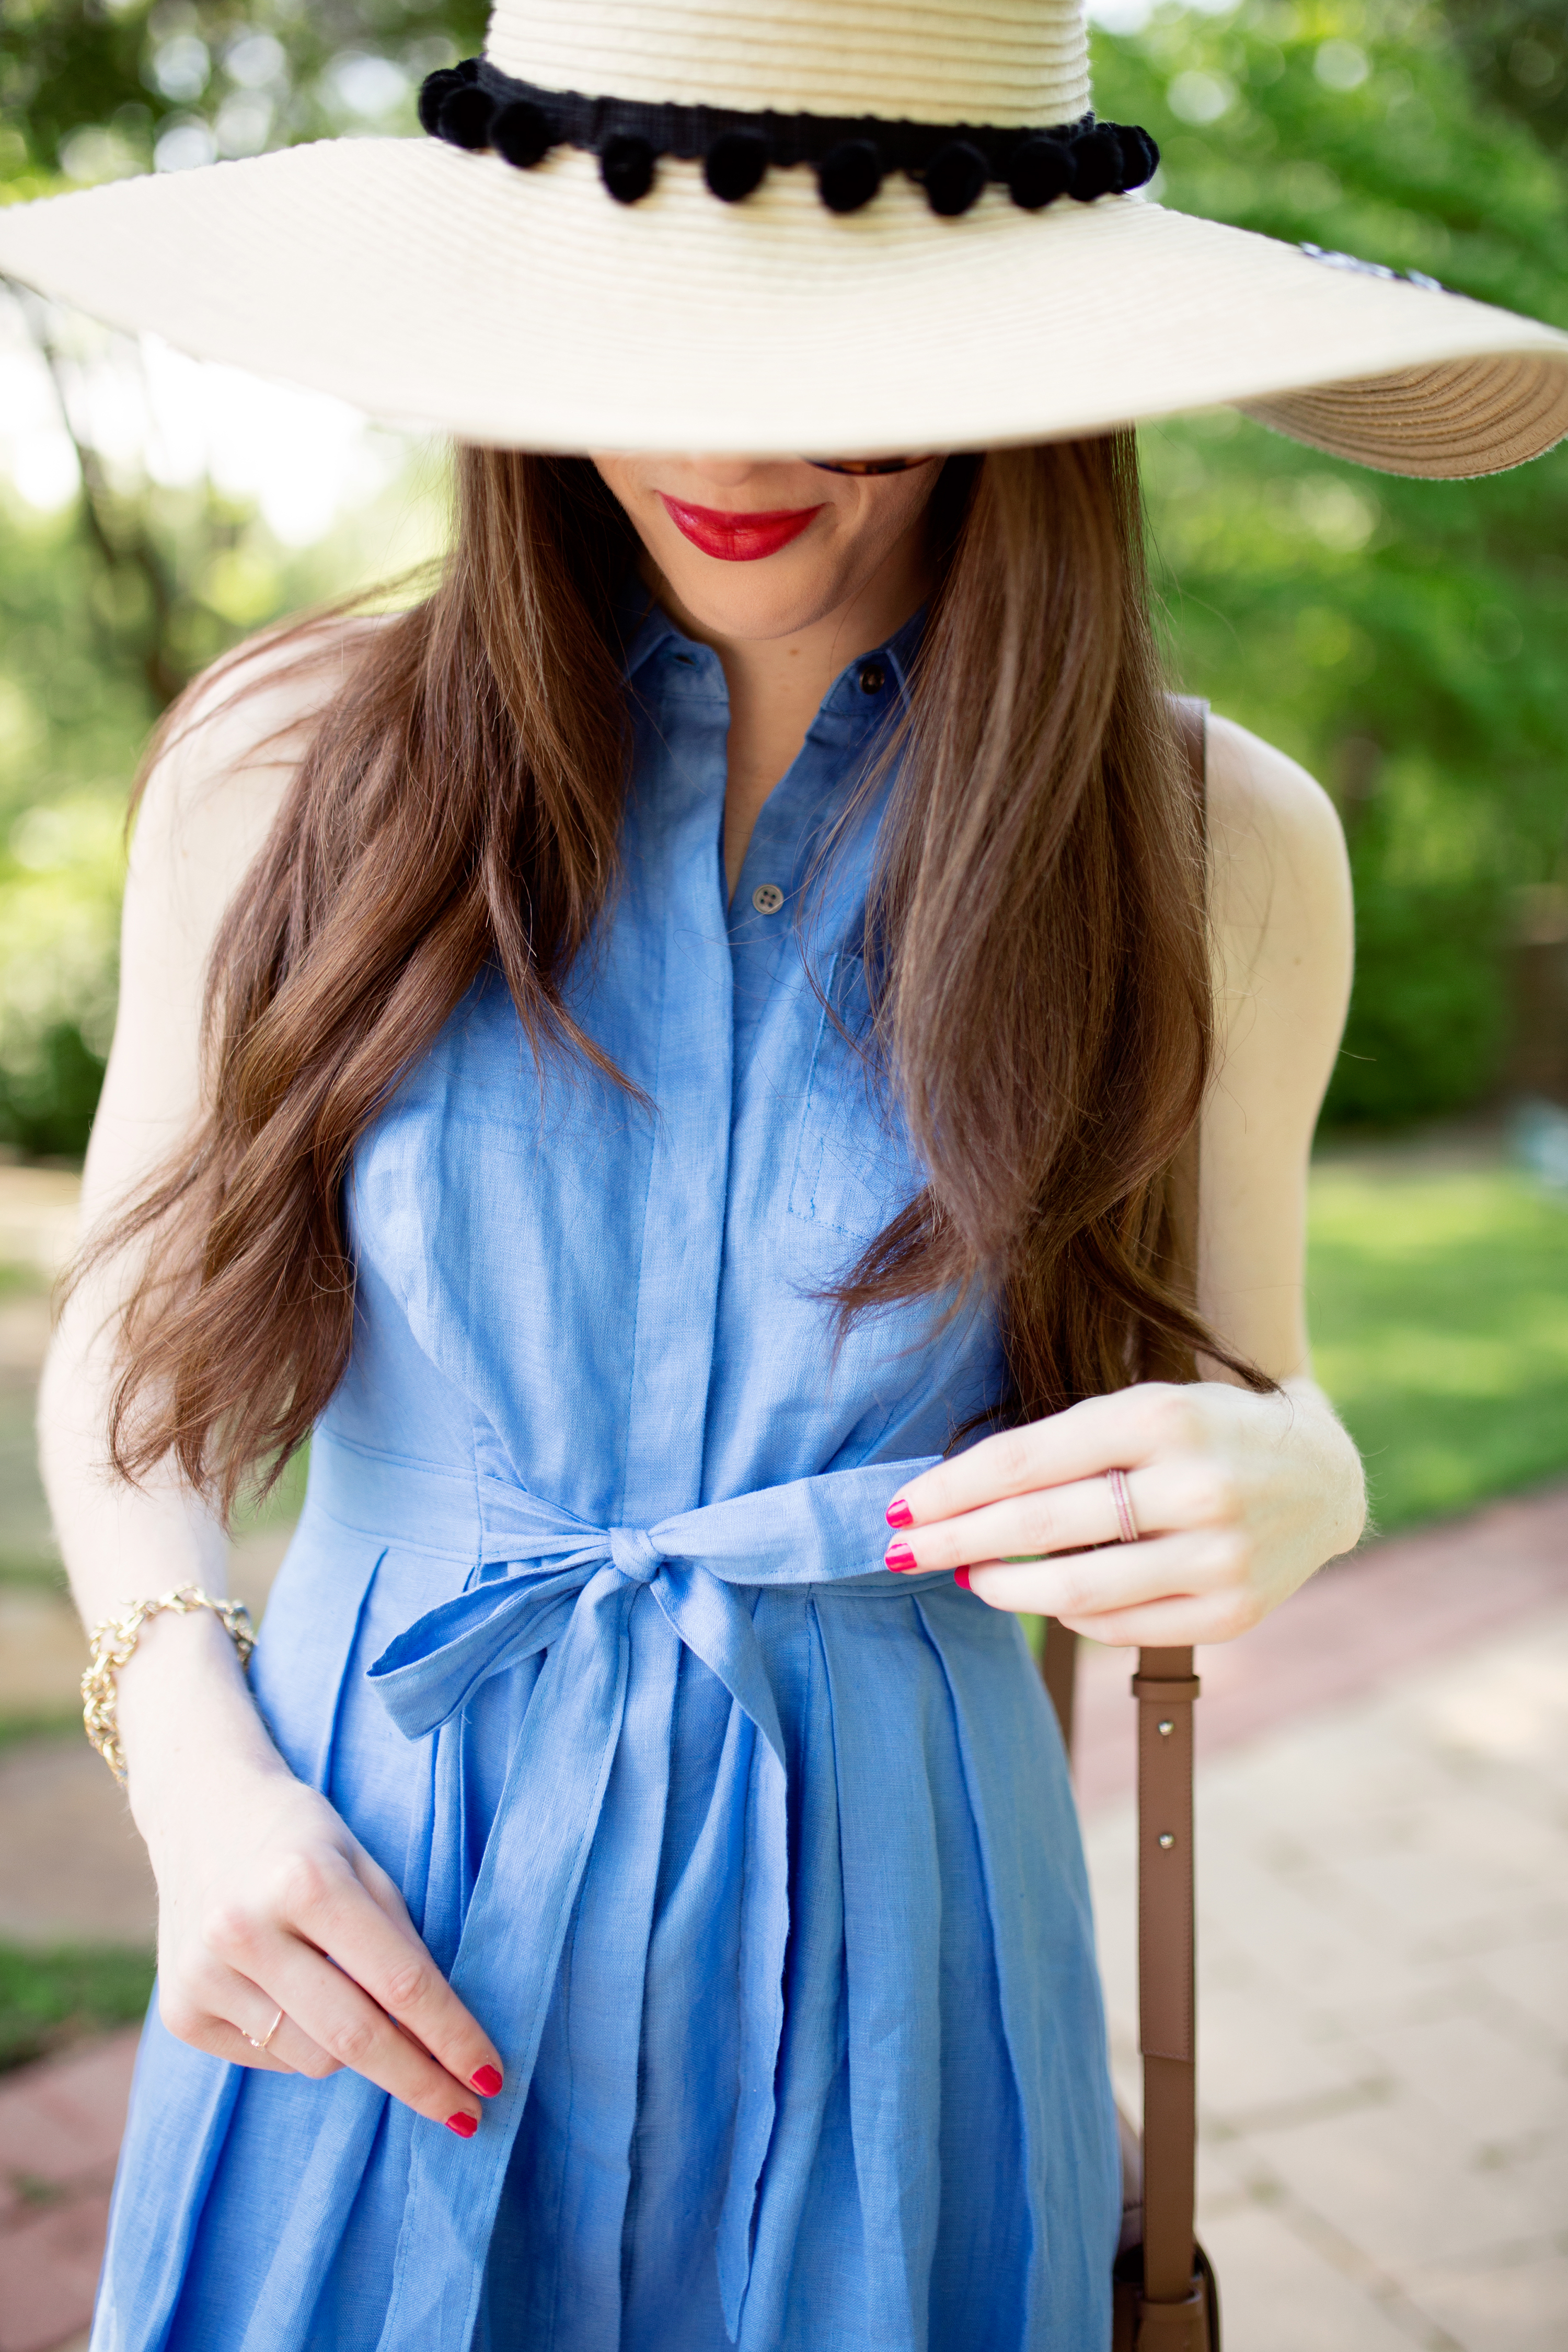 Blue shirtdress with a bow